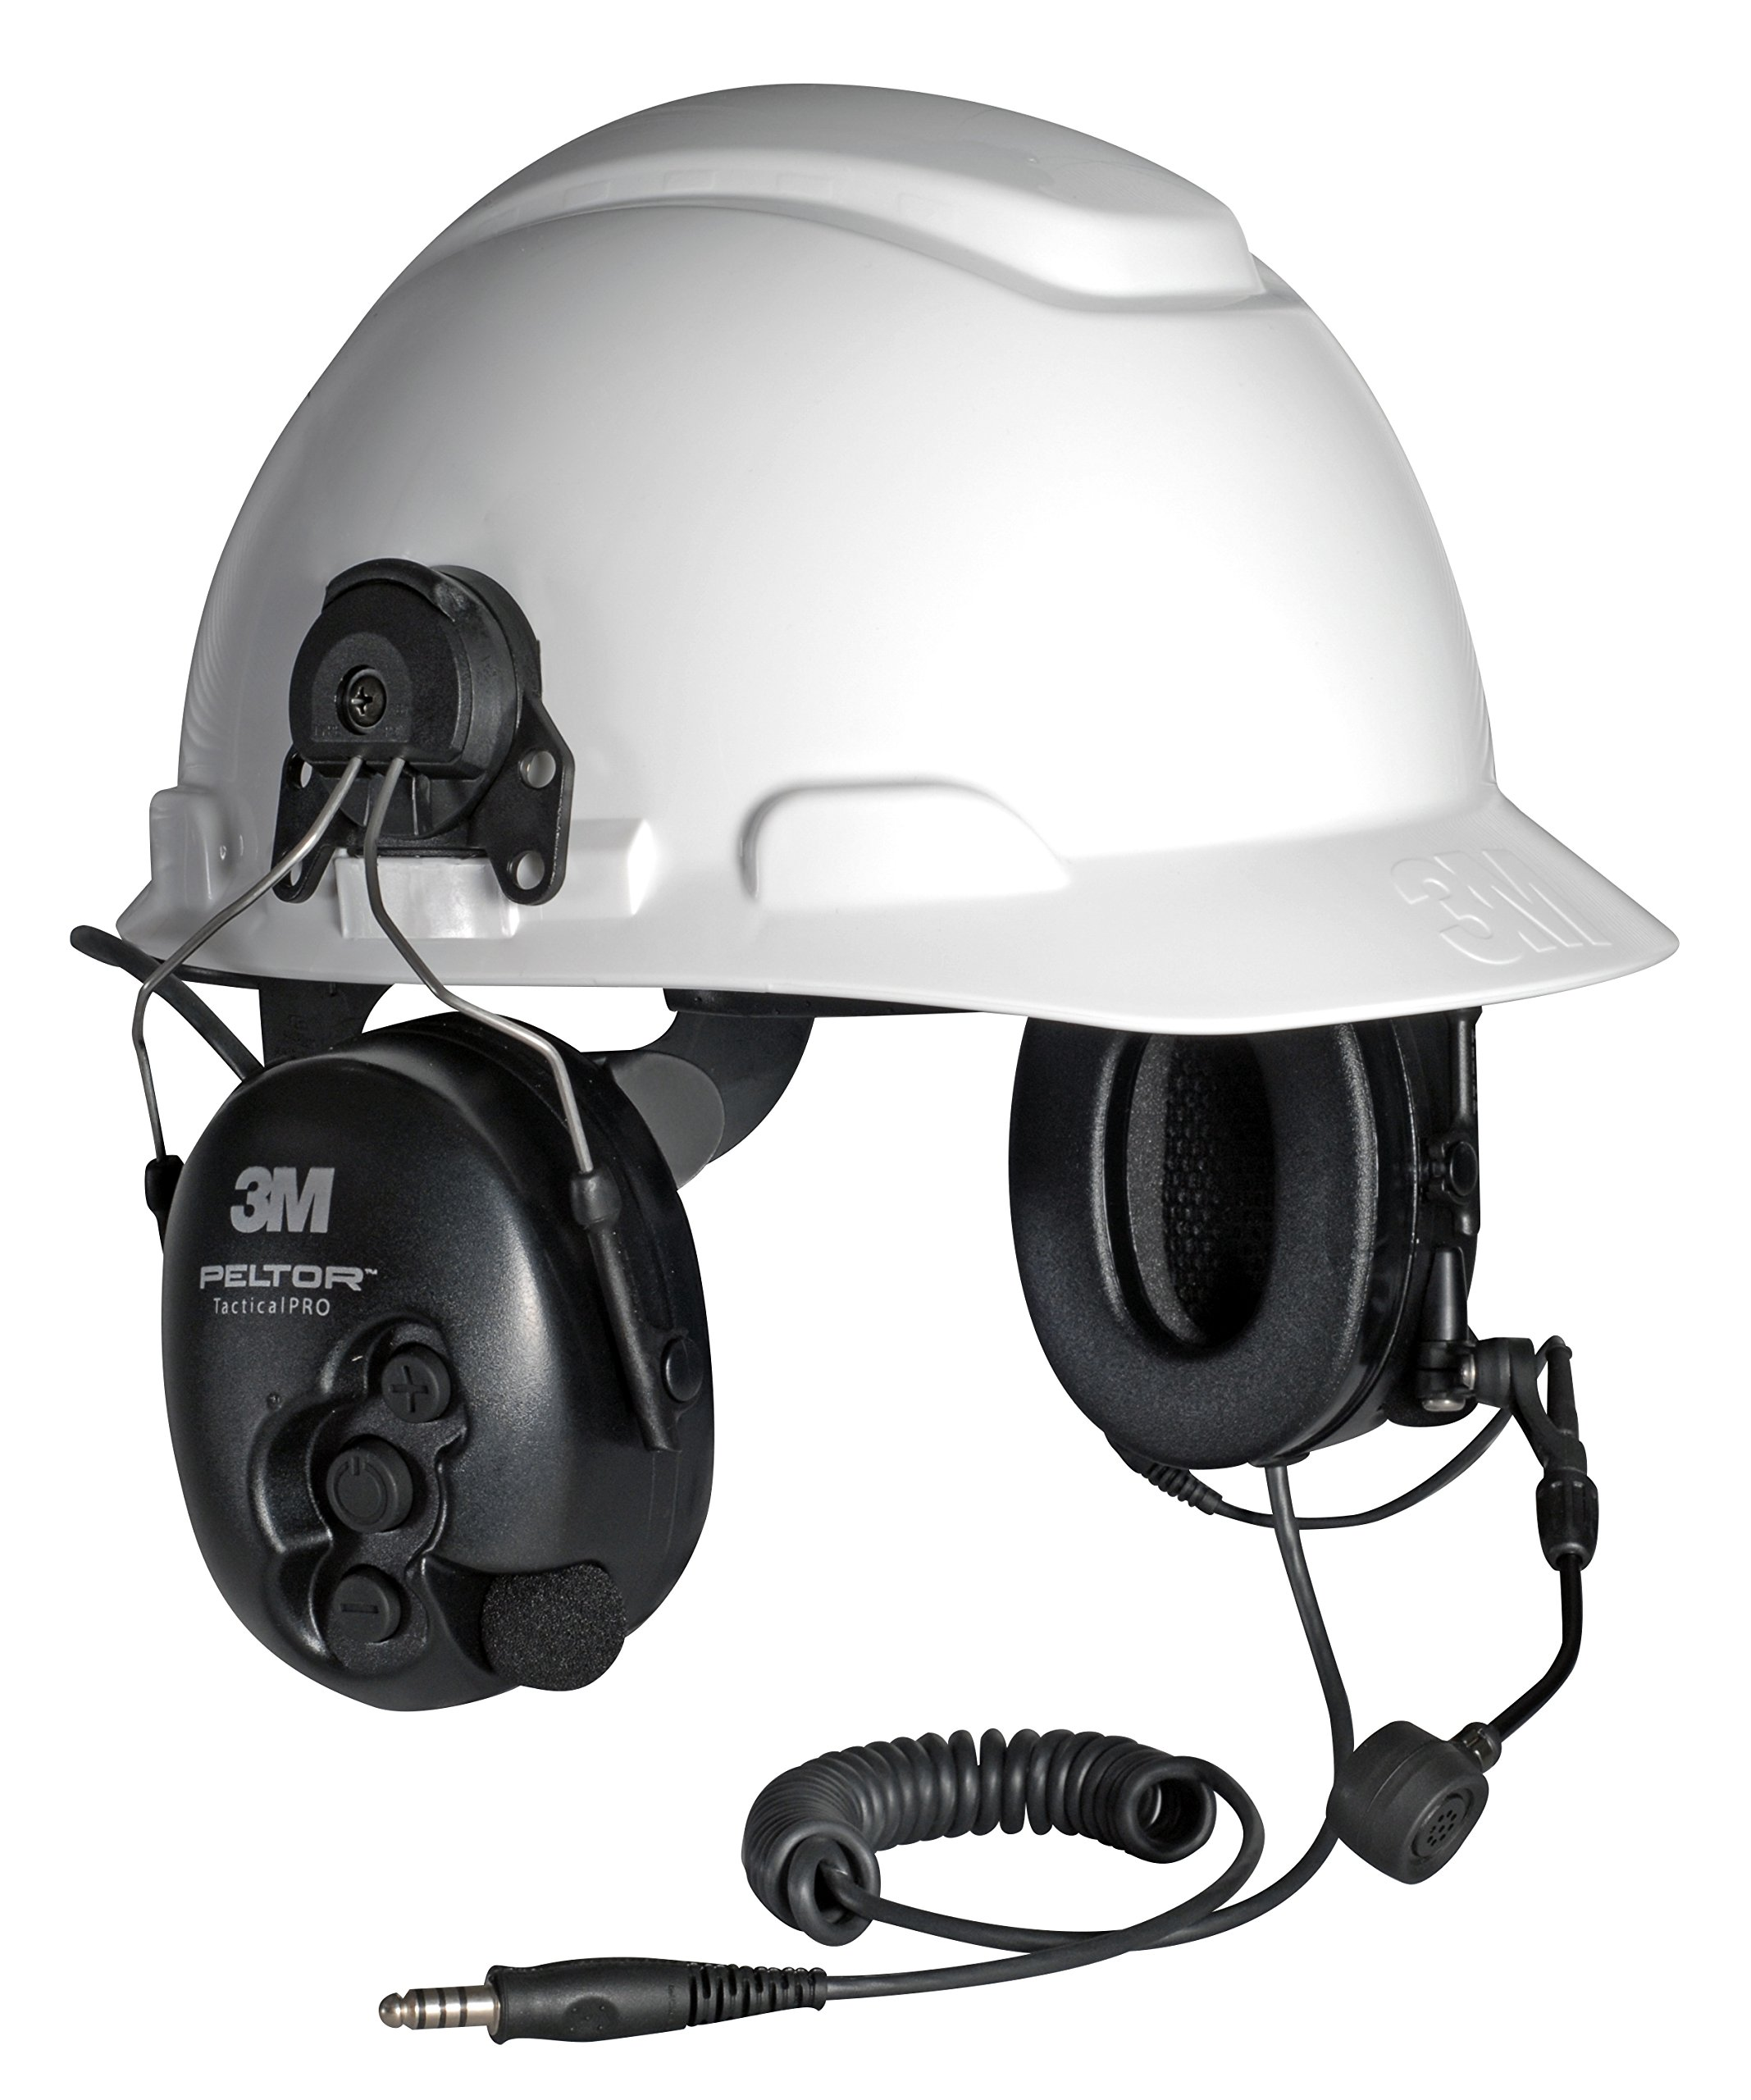 3M Peltor MT15H7P3E SV Tactical Pro Listen-Only Hard Hat Mount, Hearing Protection, Ear Protection, NRR 22 dB, Ideal for gun ranges, forklift drivers, airport ground personnel, and maintenance mechanics